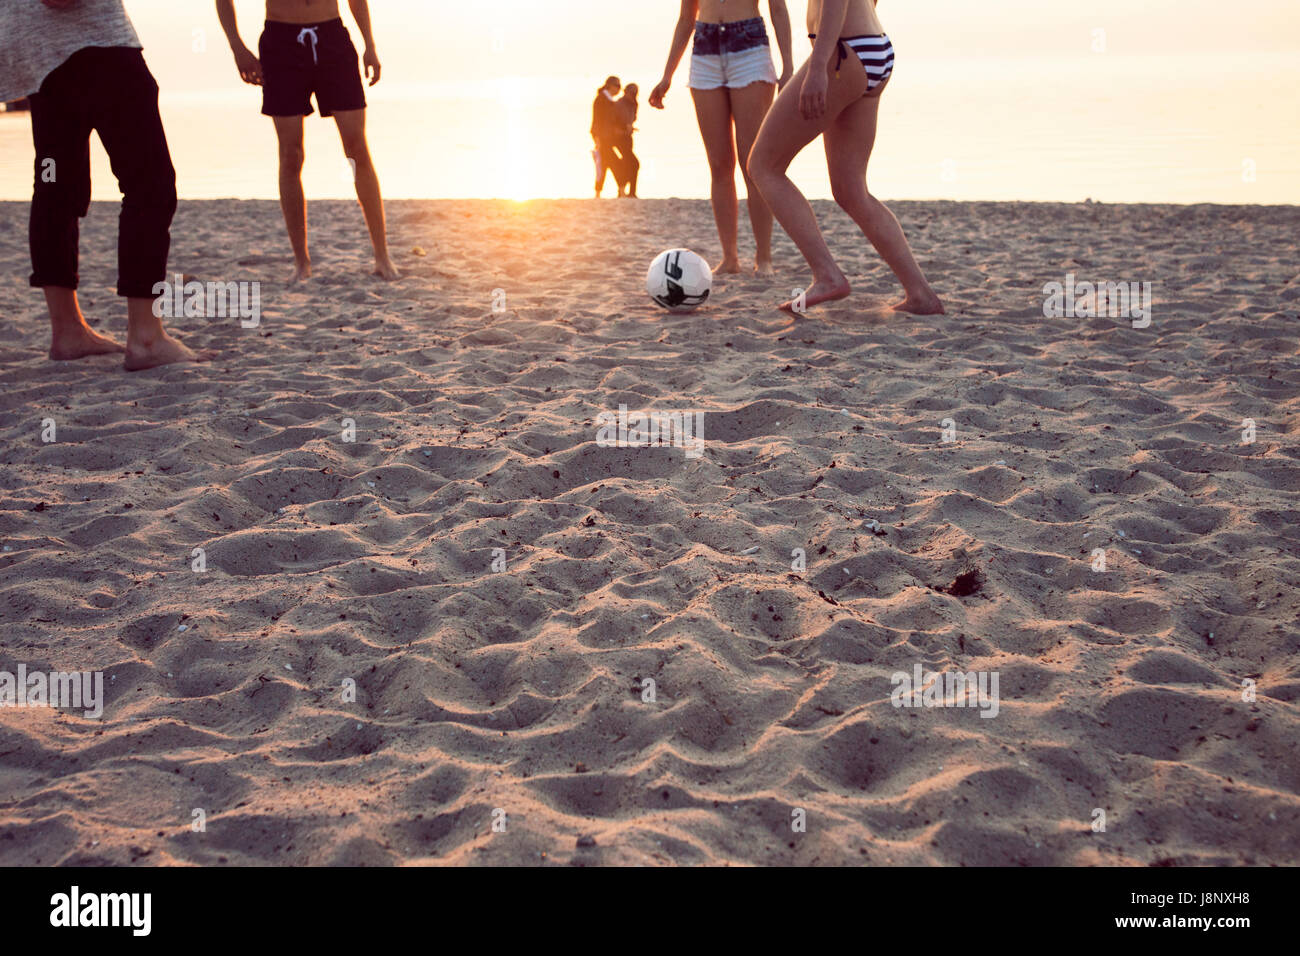 Young men, young woman and teenage girl (16-17) playing soccer on sand at sunset Stock Photo